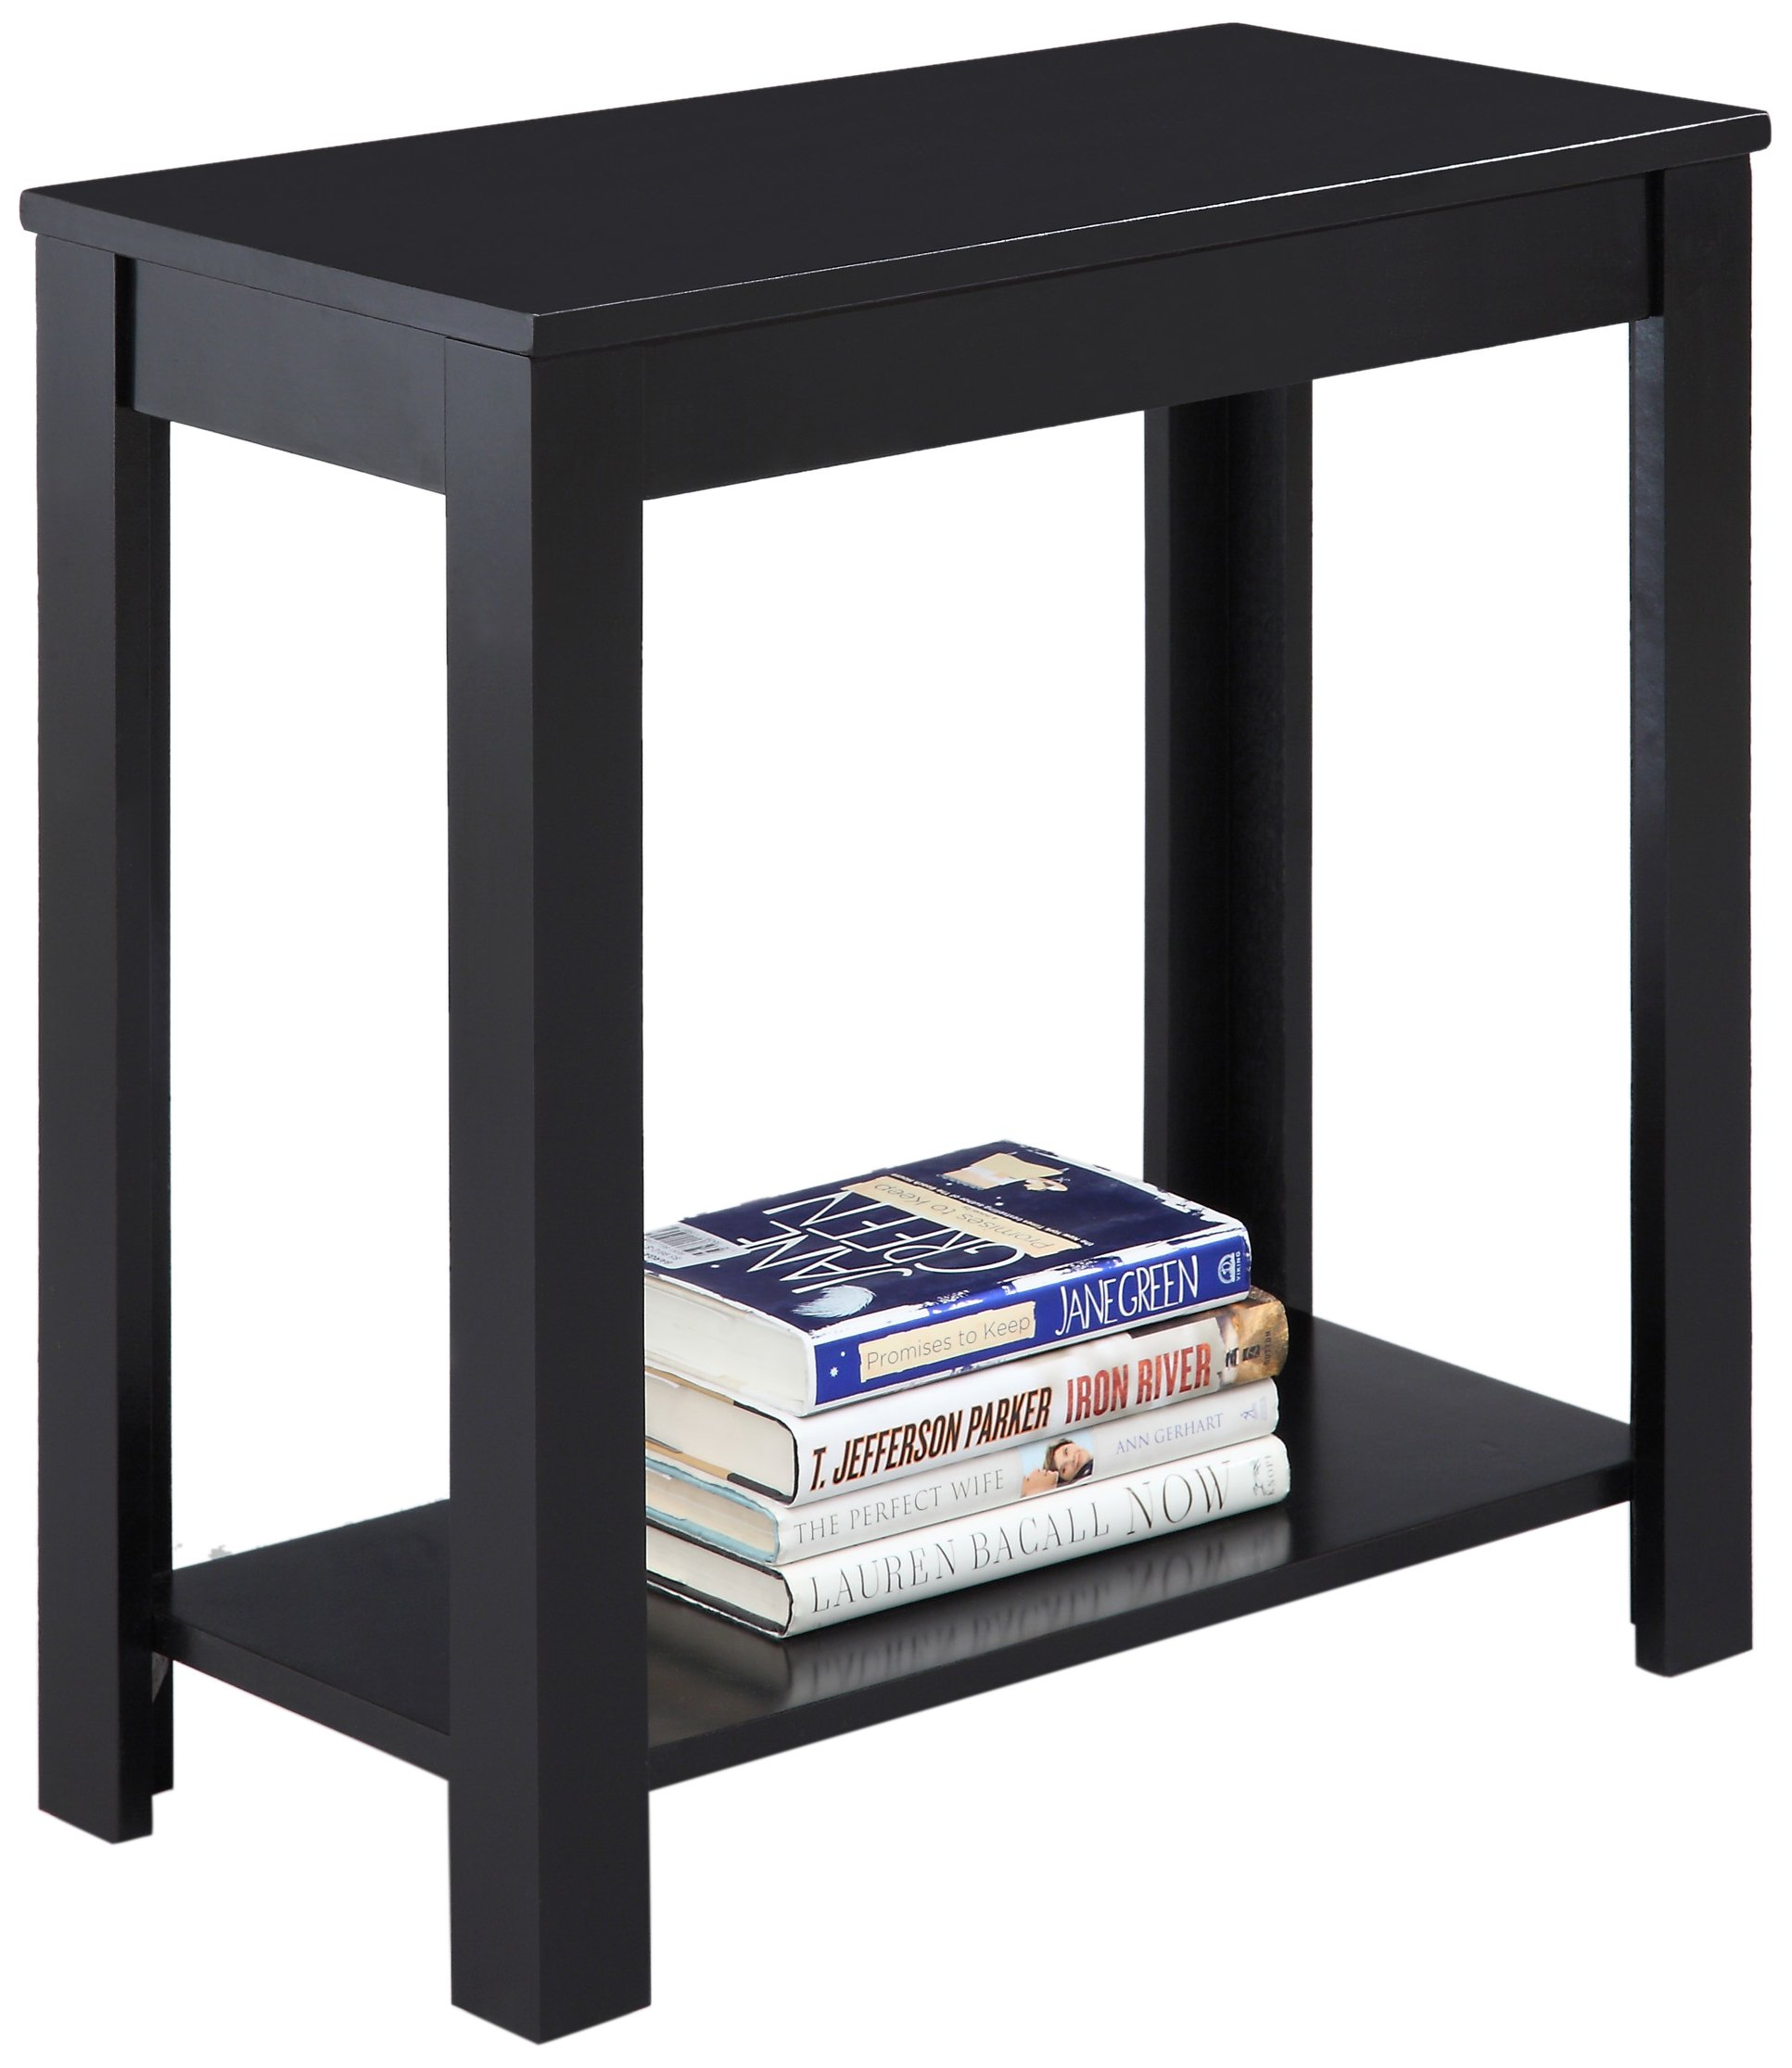 modern end side table storage coffee wood accent living room furniture black new couch covers target white marble cocktail glass and metal outdoor ideas diy tablecloth for small